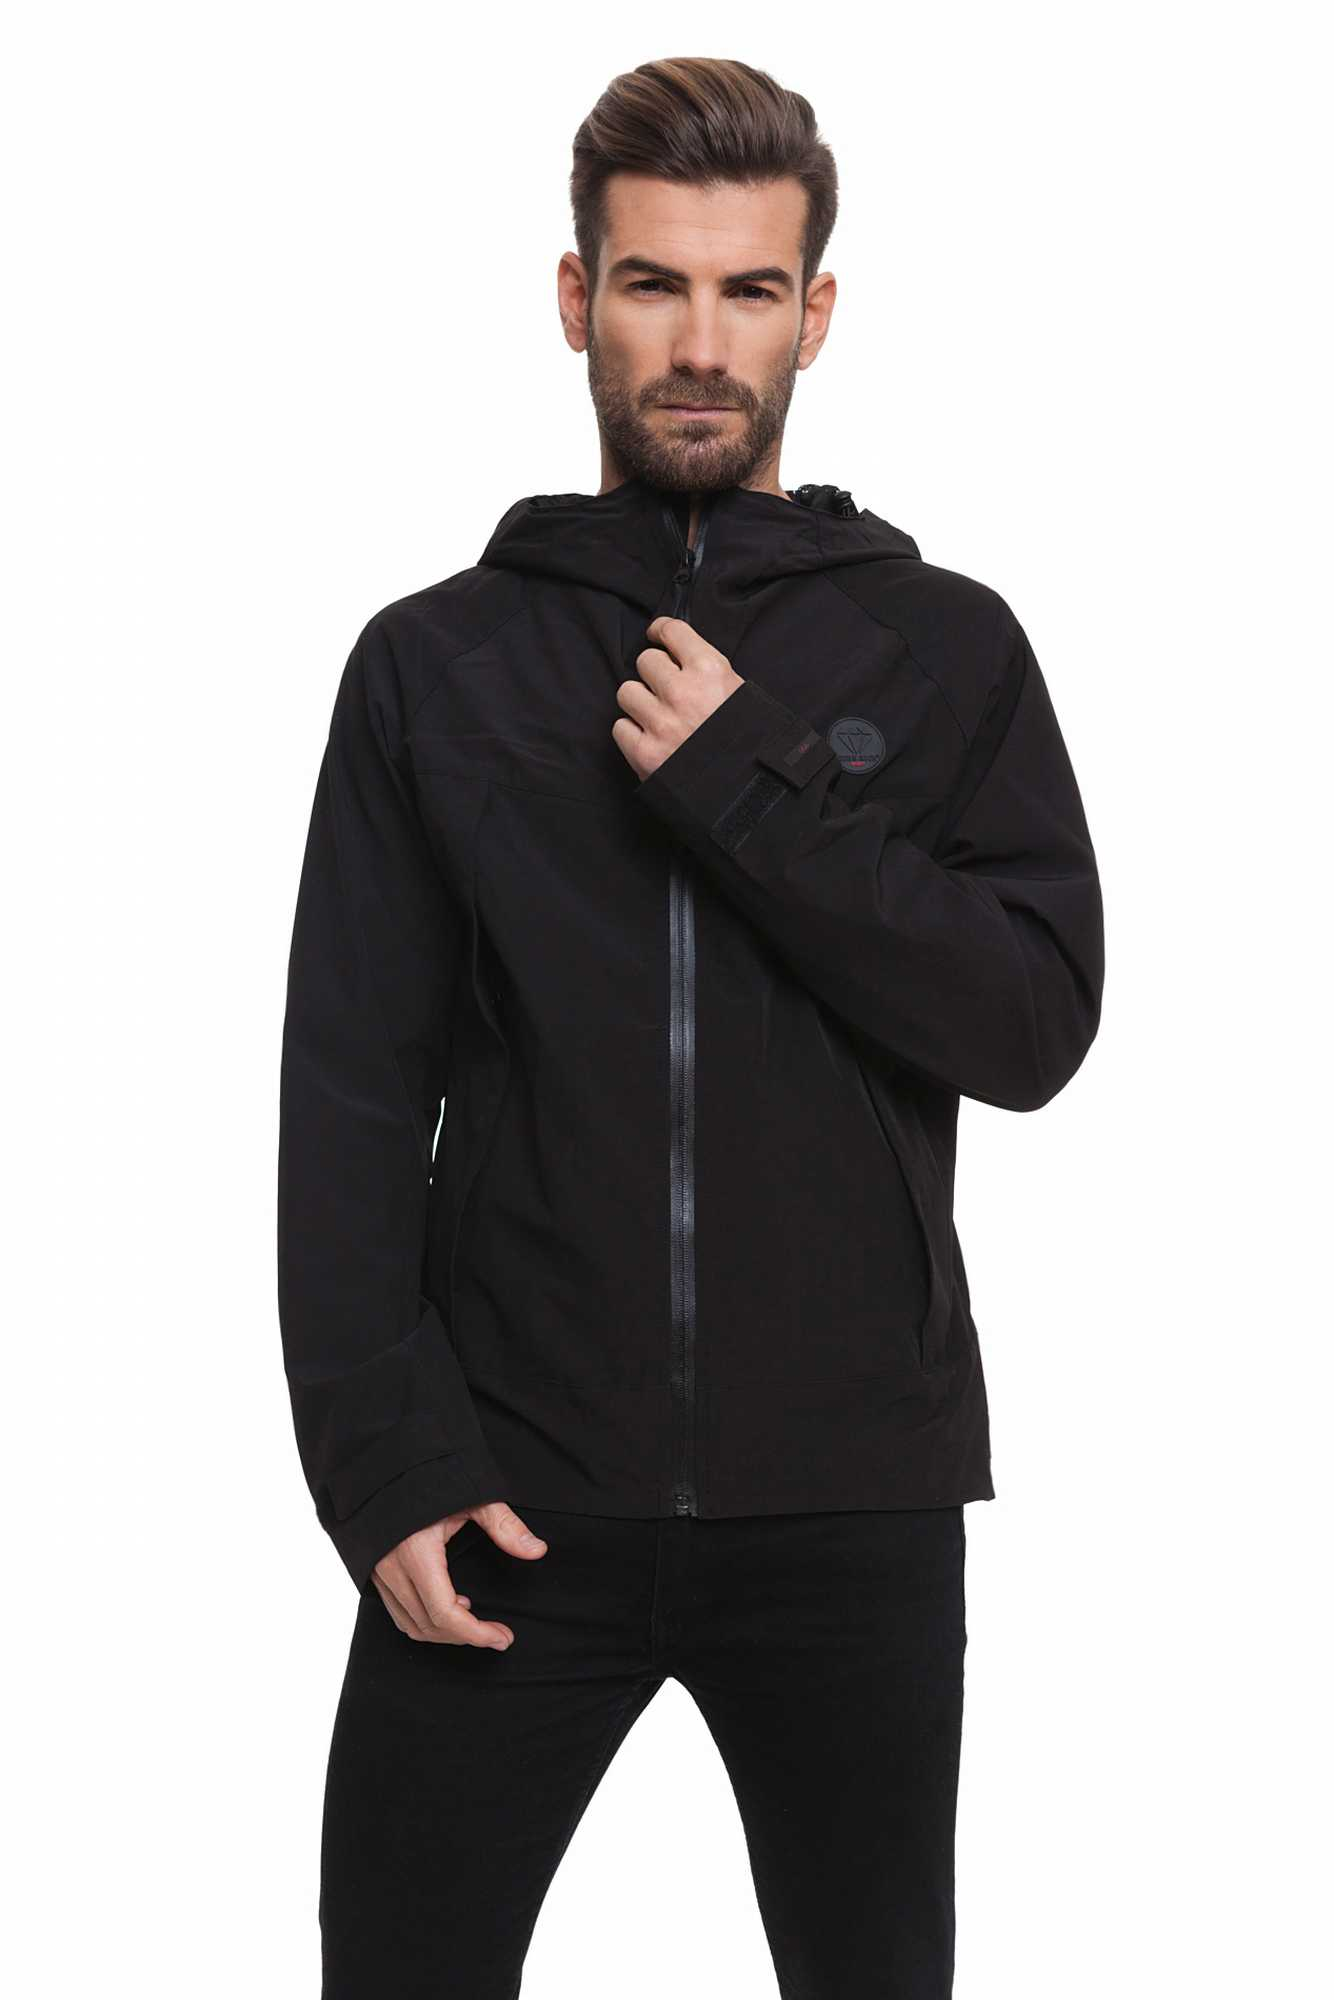 Born Rich Jacket For Men JACQUET With Hoodie And Black Color Zipper Length Causal BR2K111096AA2BRC